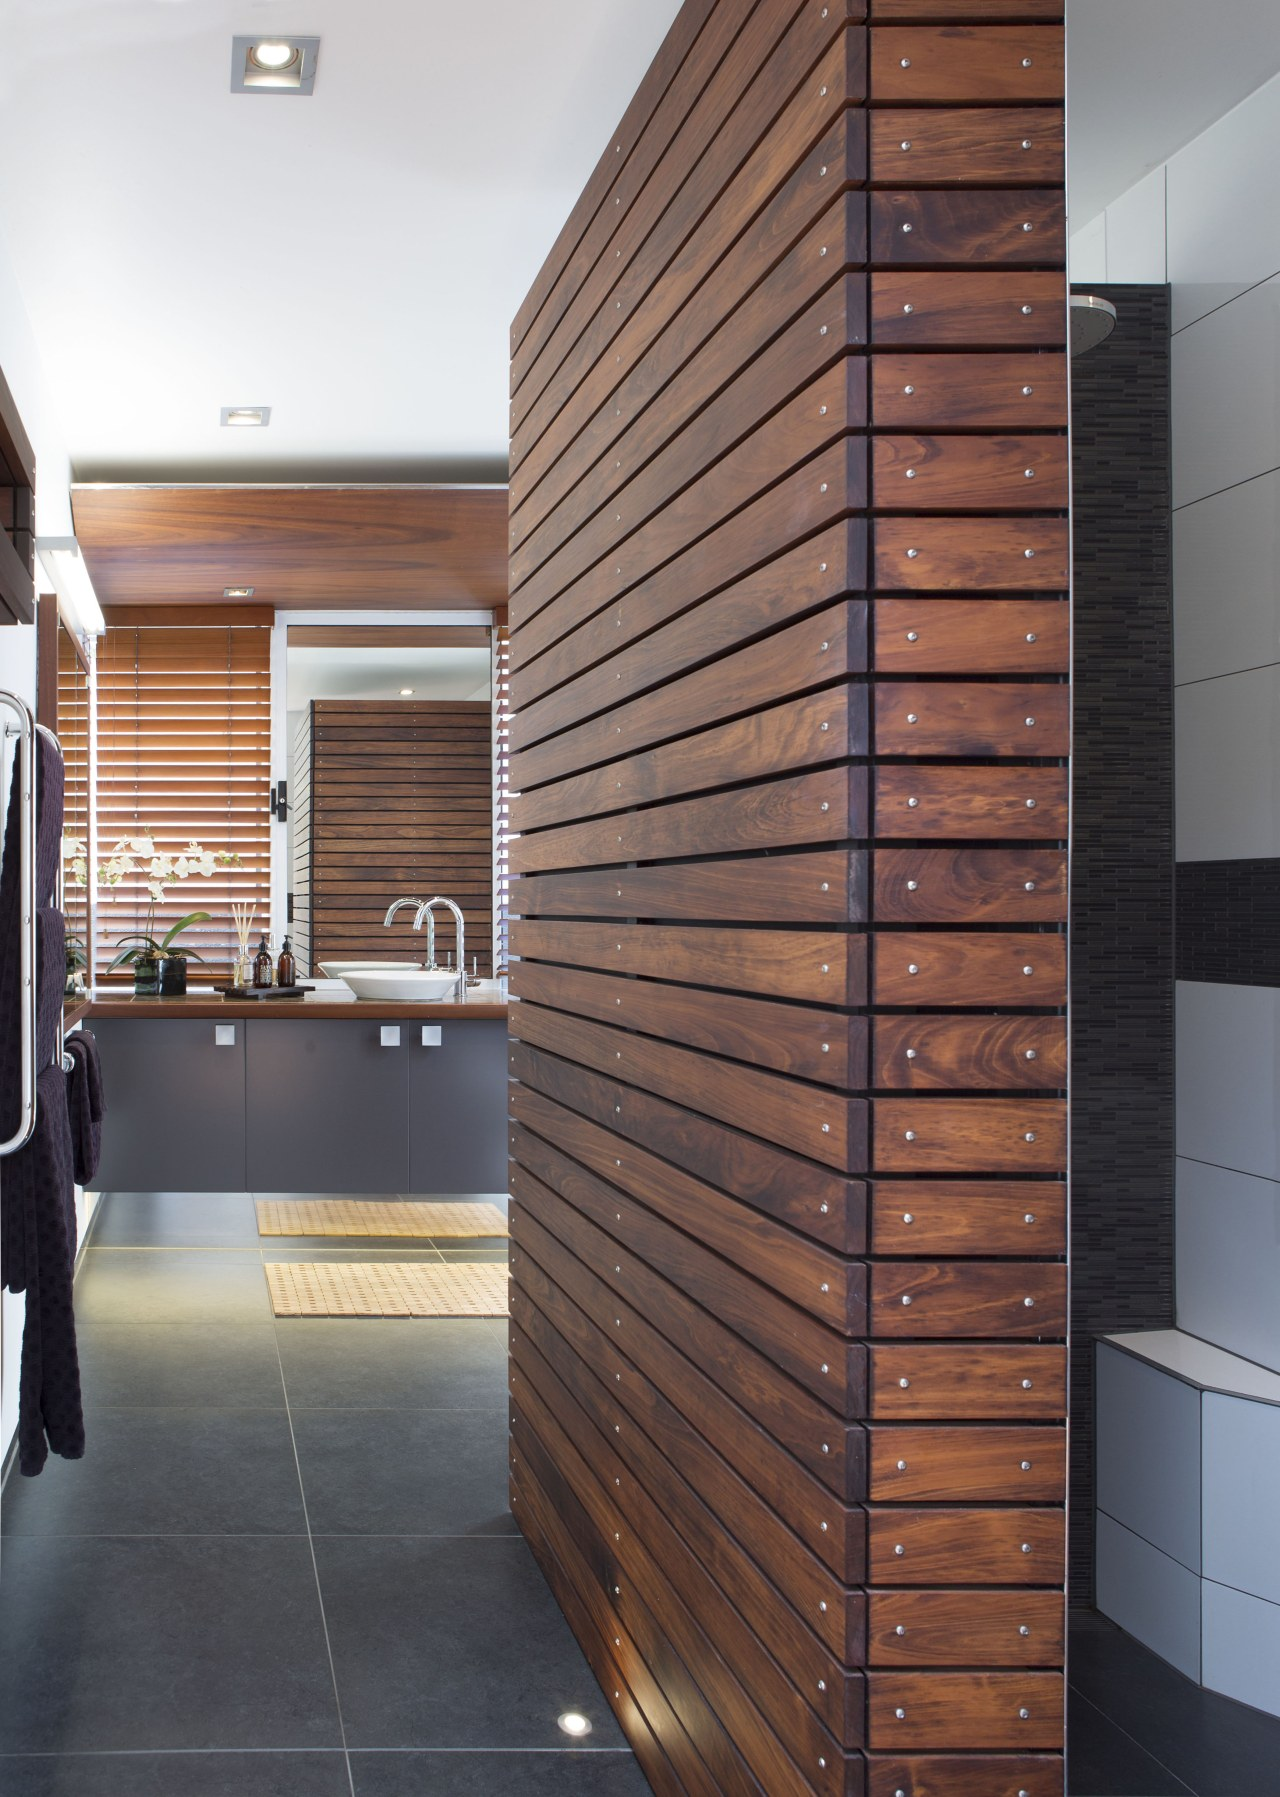 On this bathroom renovation, the black external wall architecture, daylighting, facade, floor, flooring, furniture, hardwood, interior design, wall, wood, wood stain, red